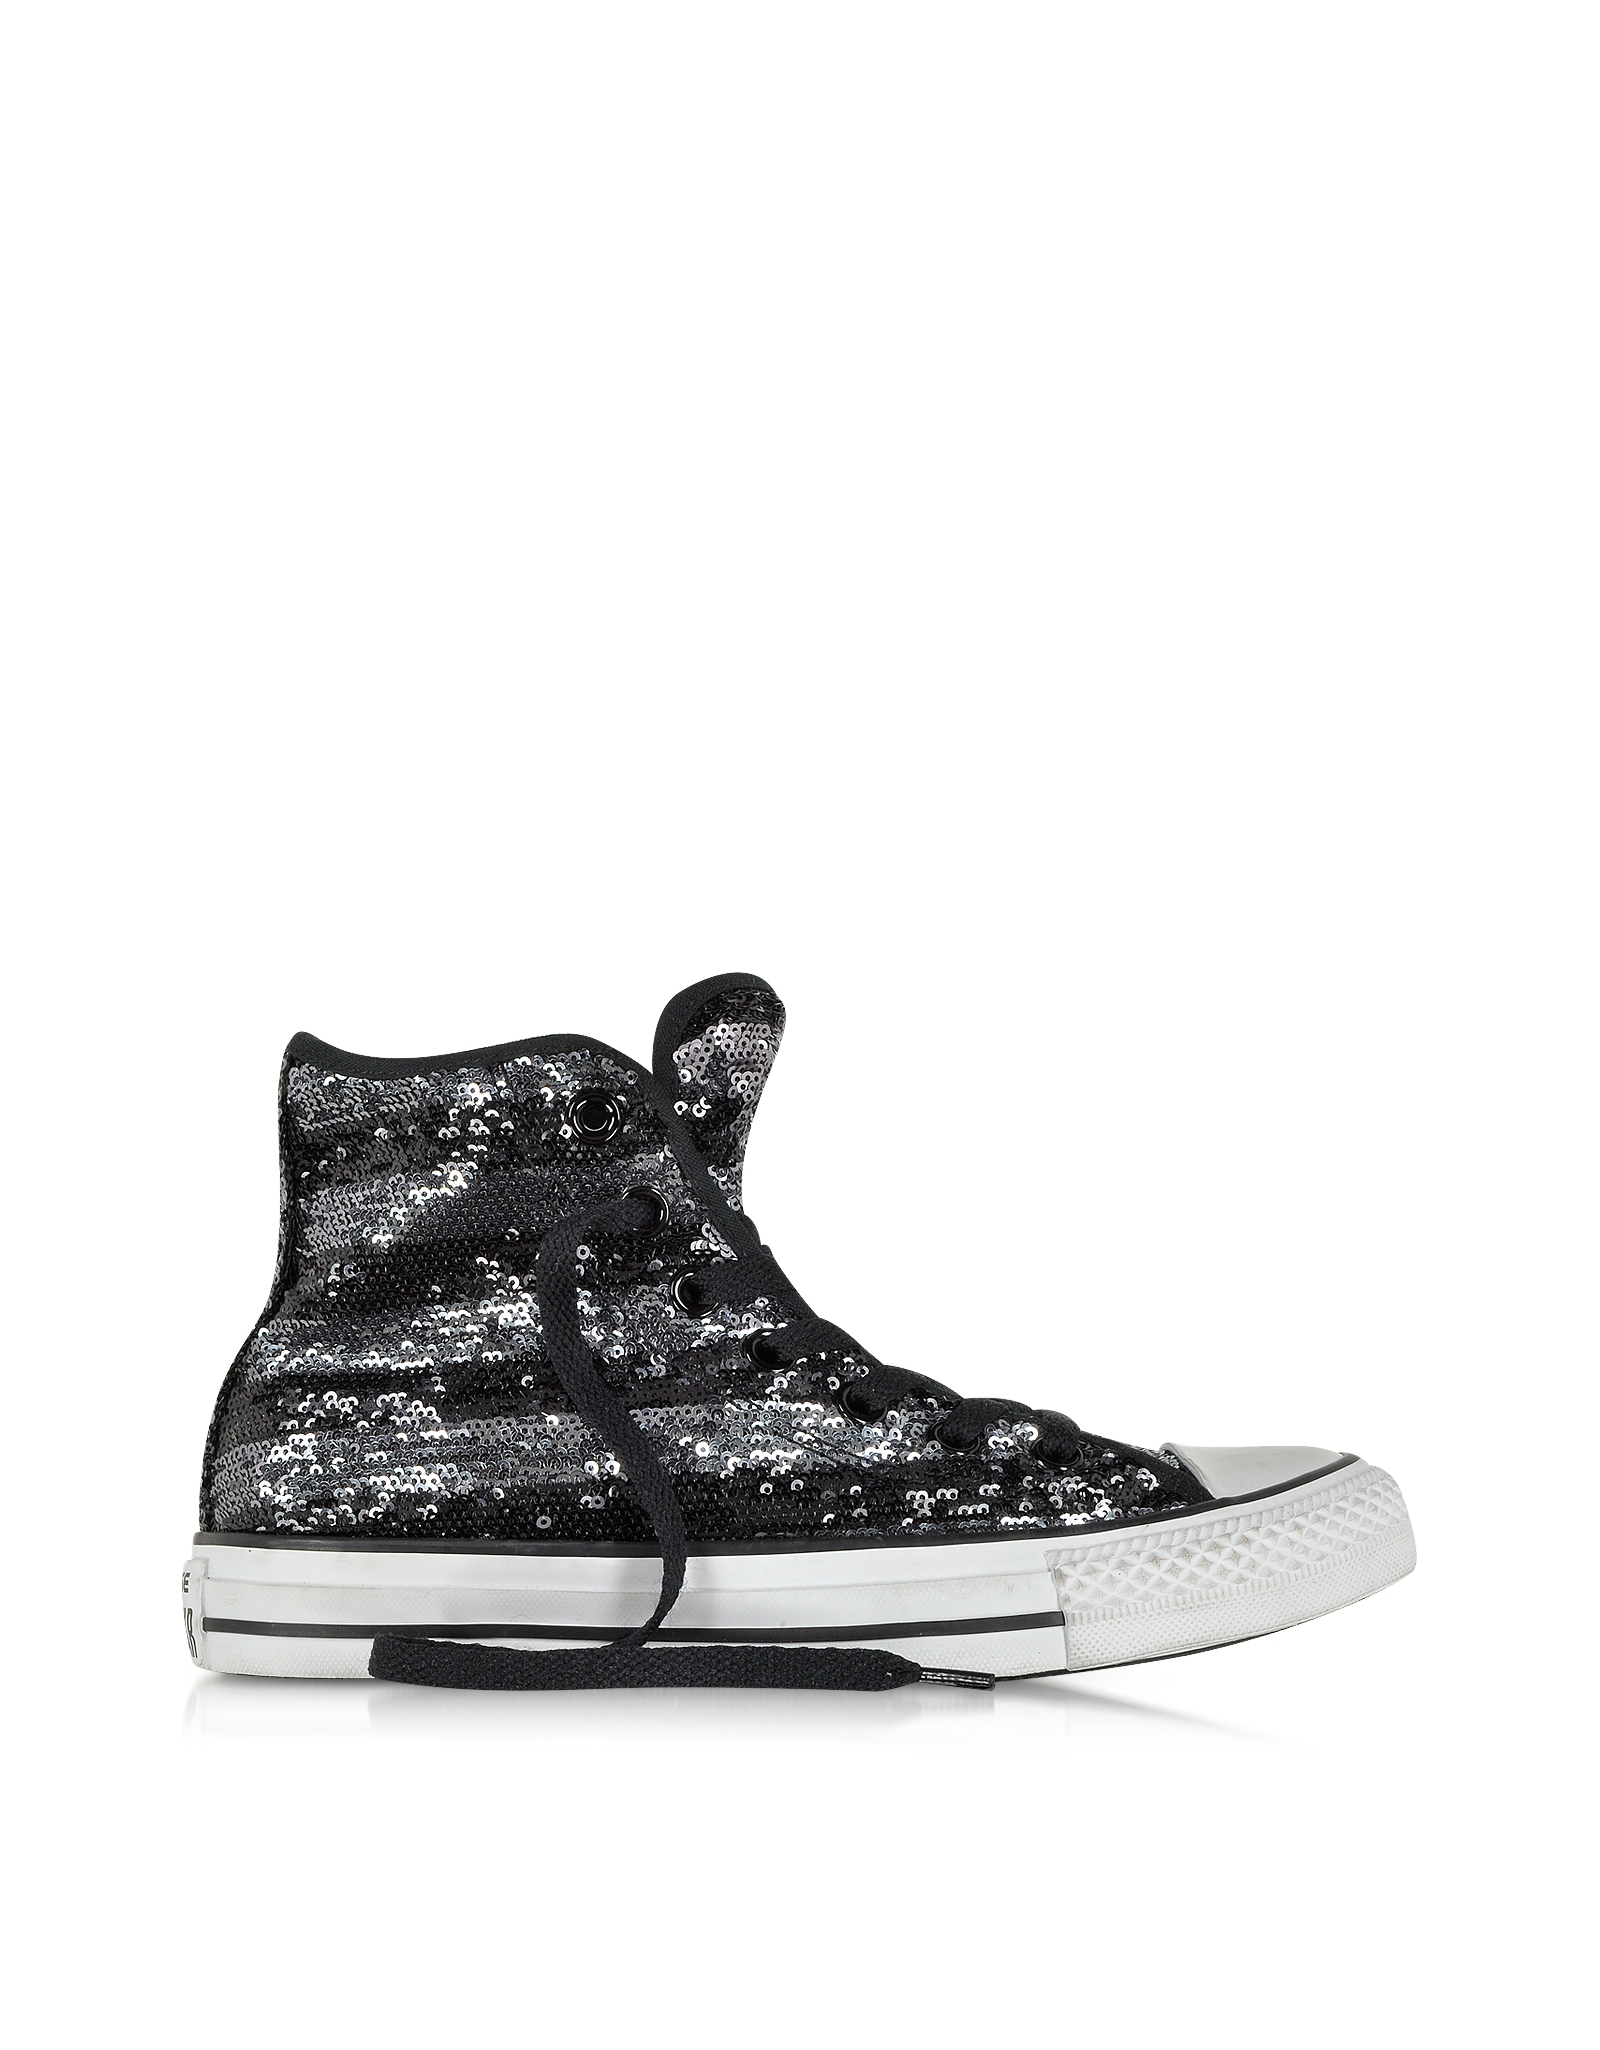 Converse All Star Hi Sequins Black And Silver Sneaker In